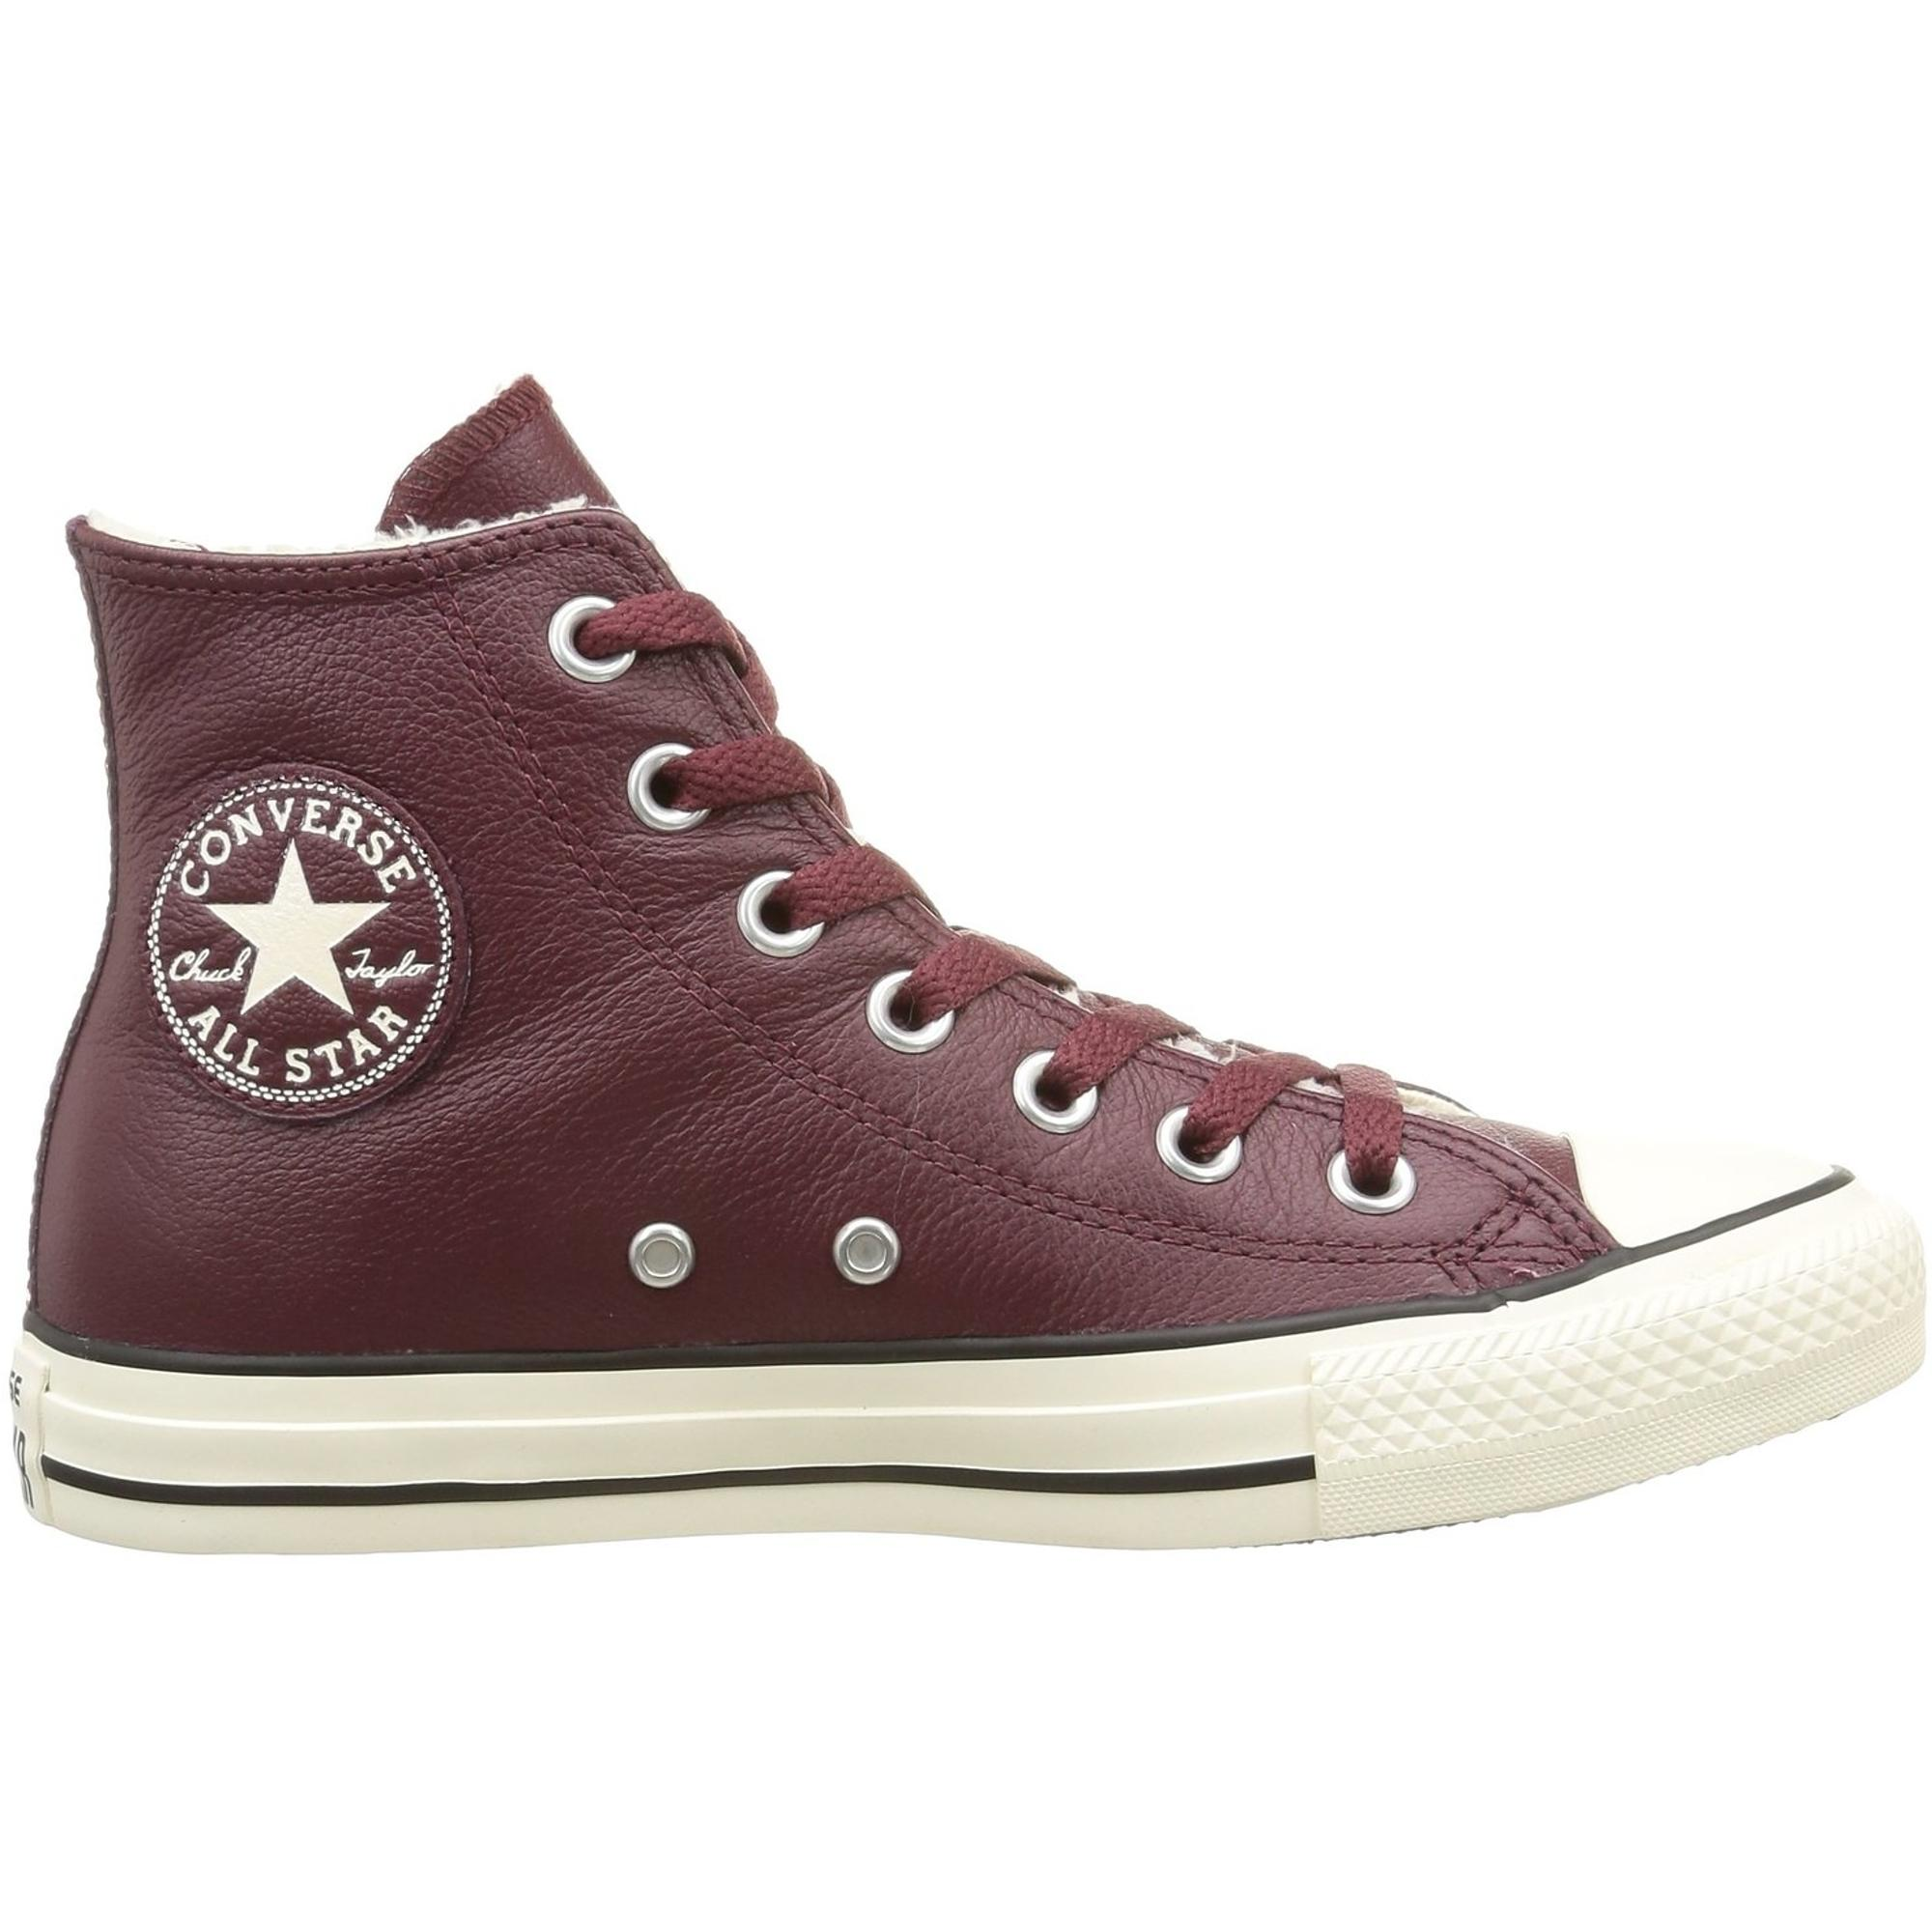 Converse Chuck Taylor All Star Shearling Hi Deep Bordeaux Leather Adult